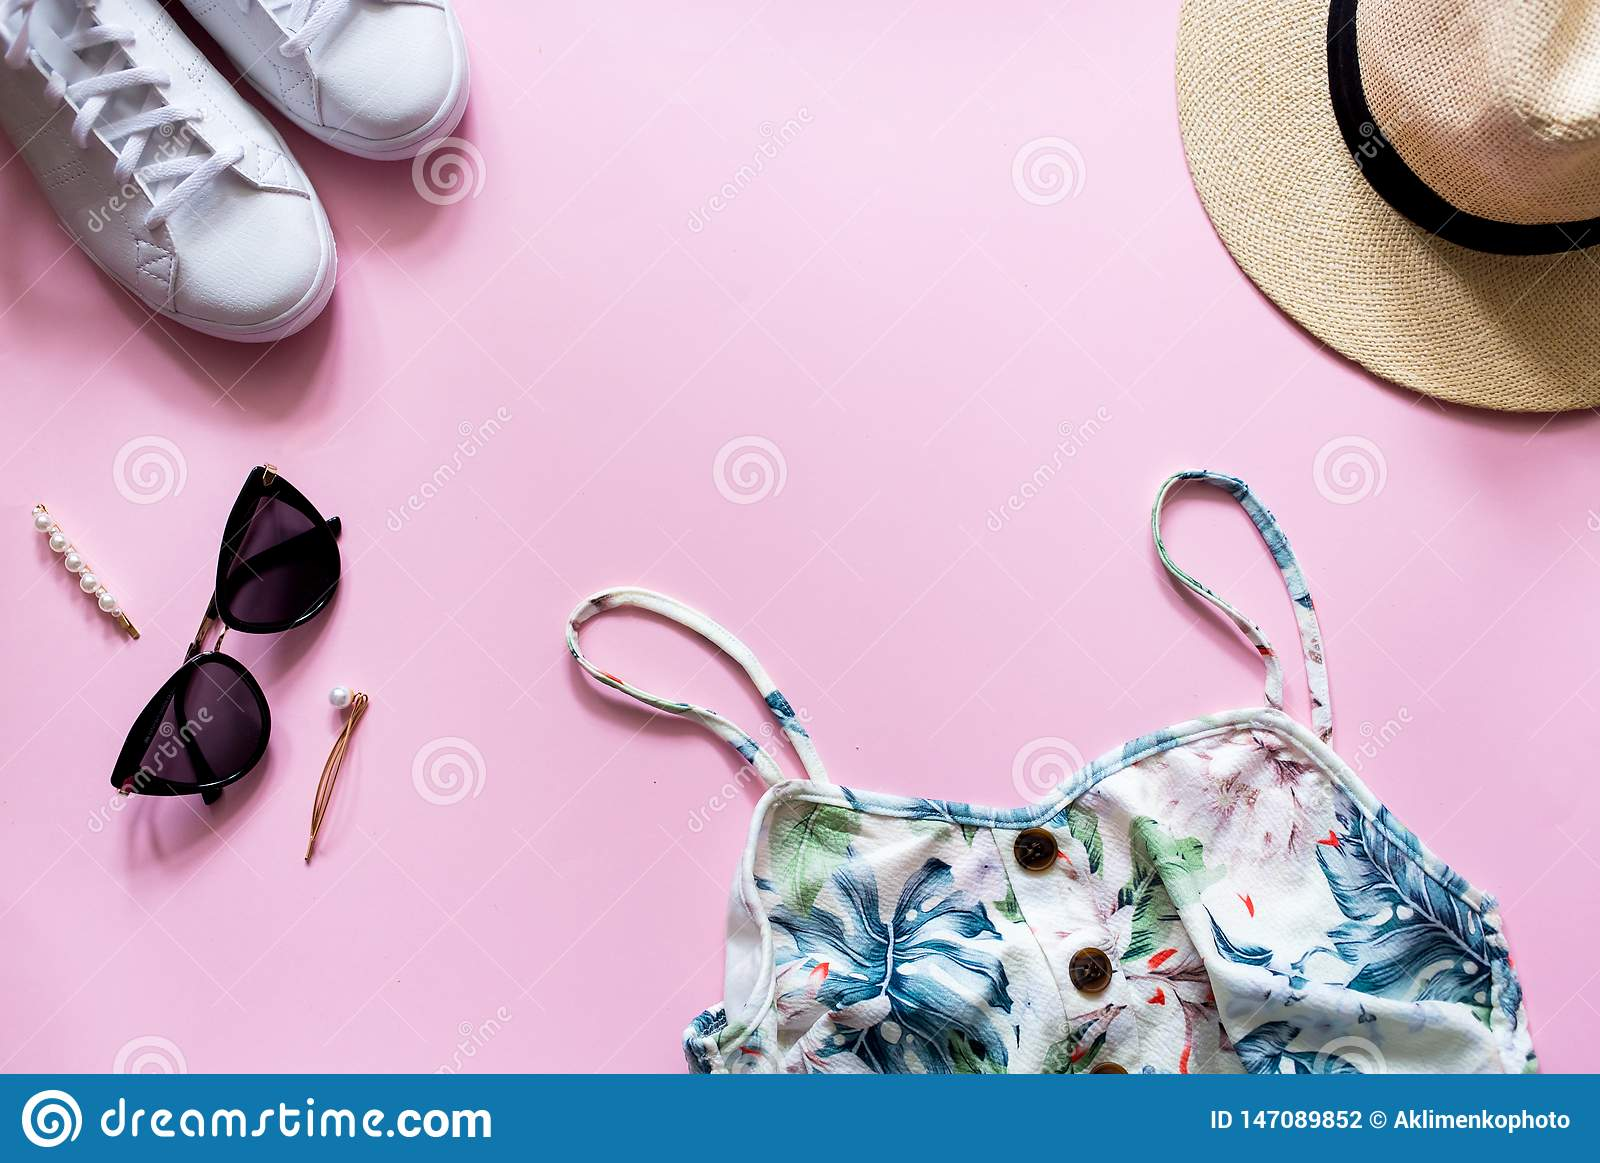 Female summer outfit on pink backgroud. Printed summer dress with straw hat, sunglasses and white sneakers.